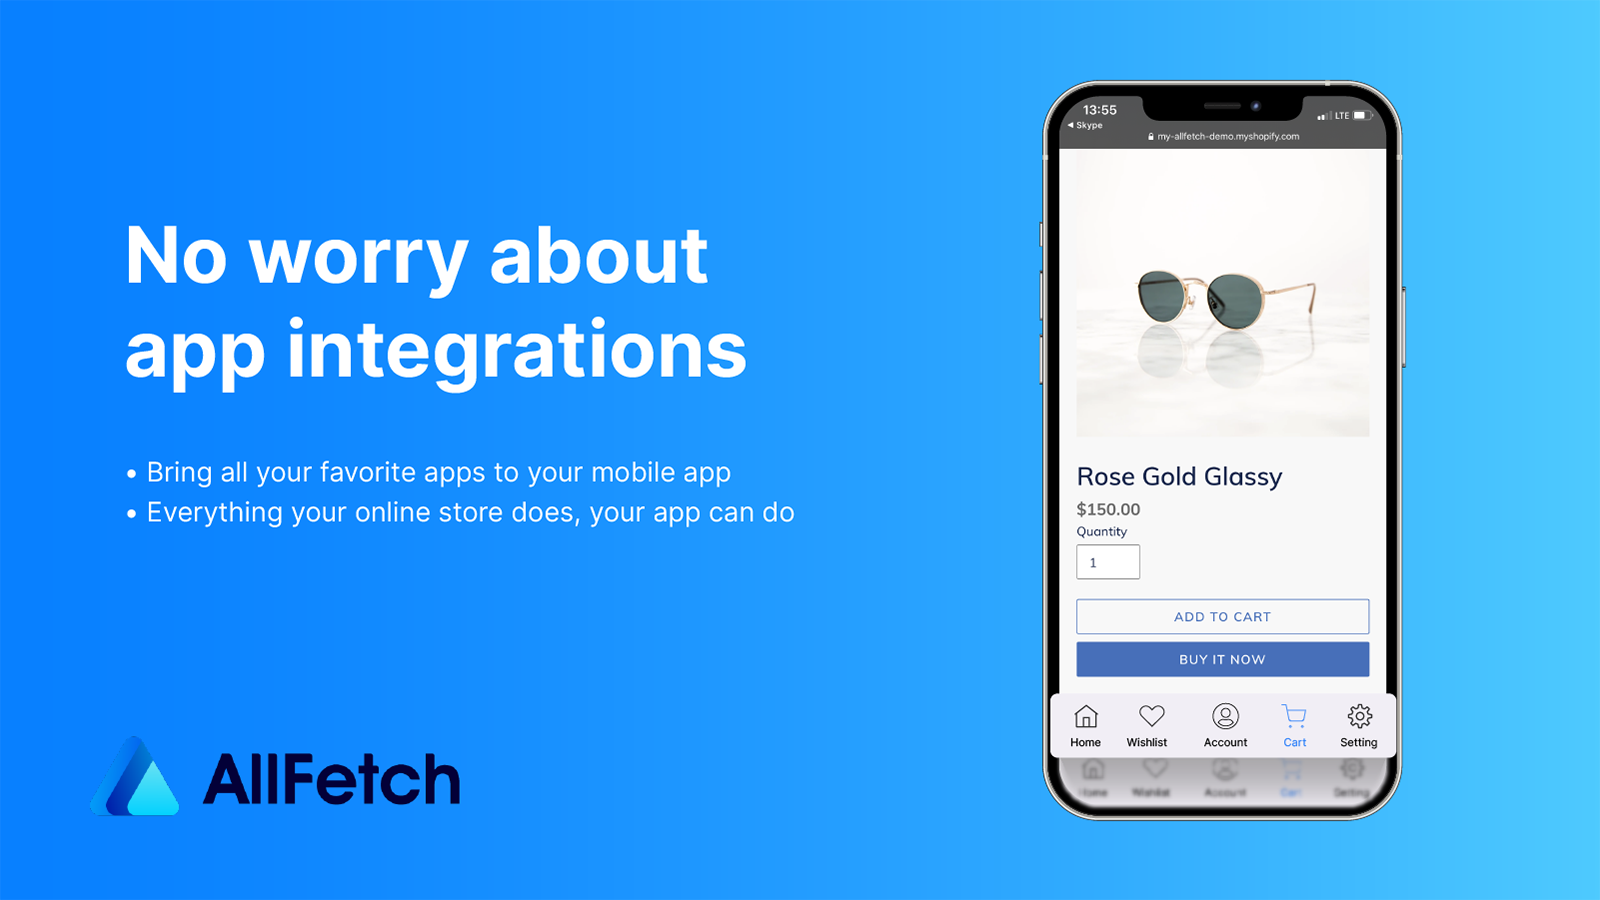 The mobile app seamlessly work with all current Shopify apps